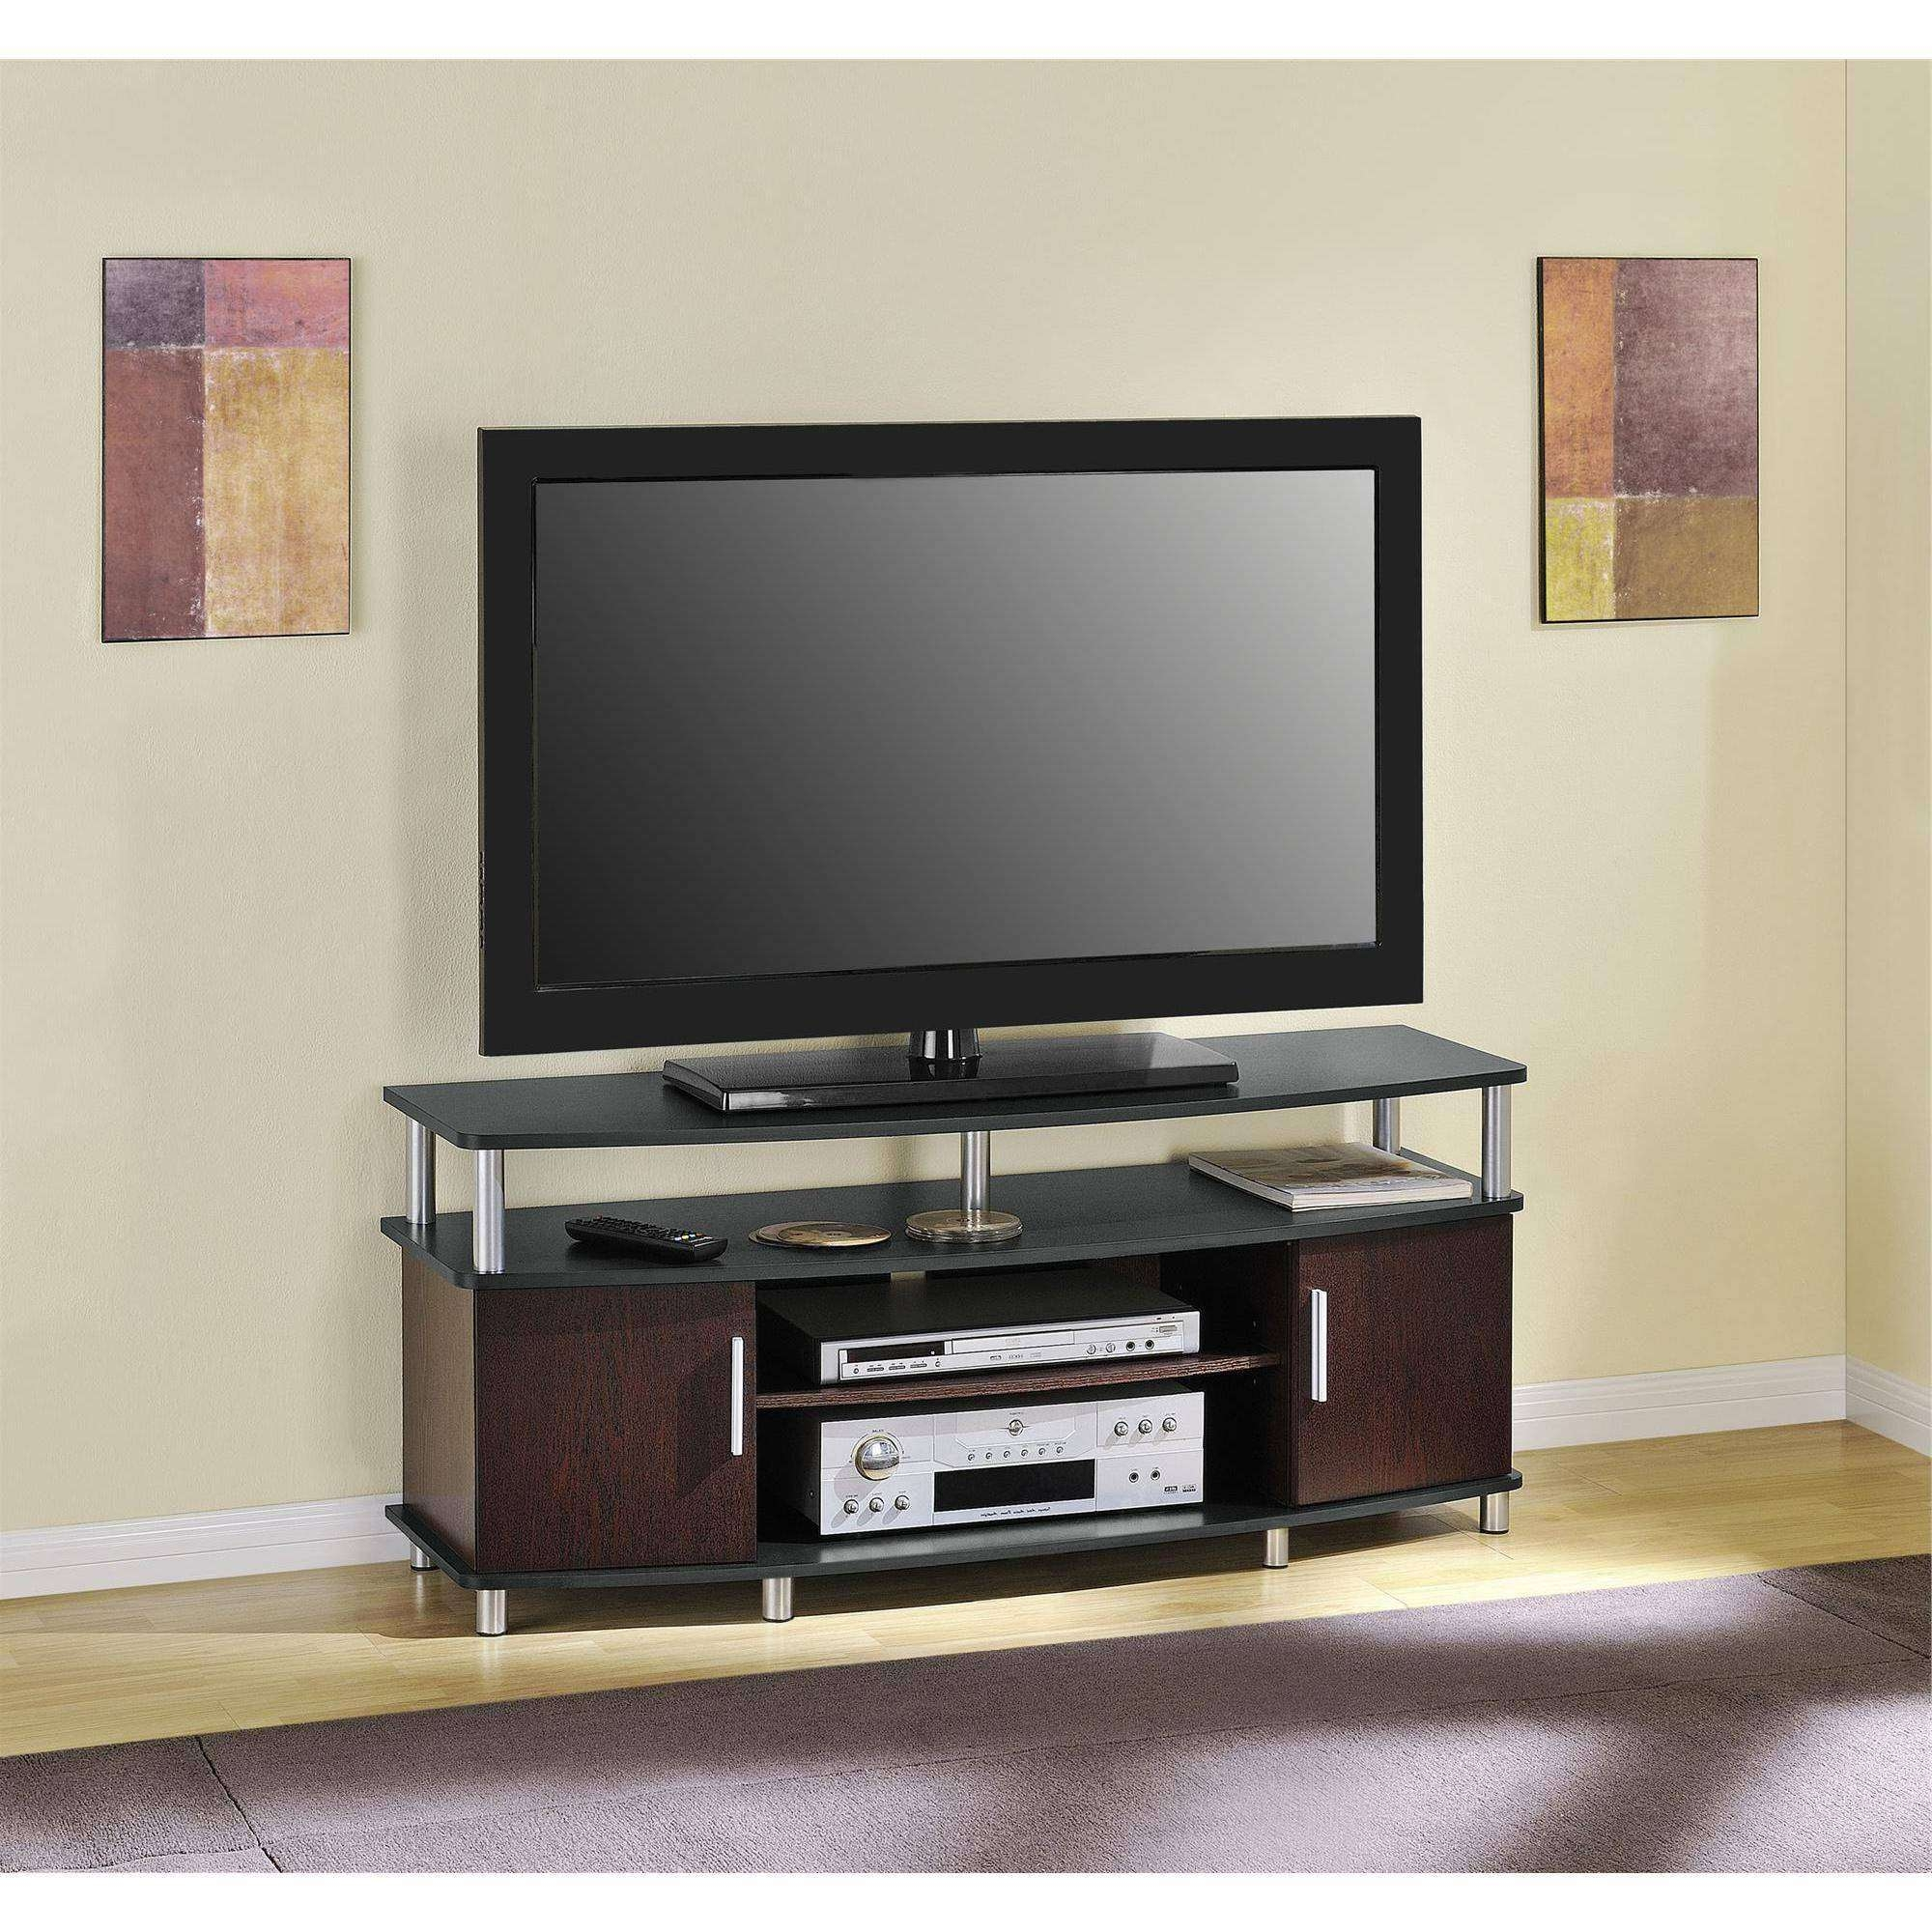 Tv : Tv Cabinet Corner Design Beautiful Black Tv Stands With With Regard To Tall Black Tv Cabinets (View 19 of 20)